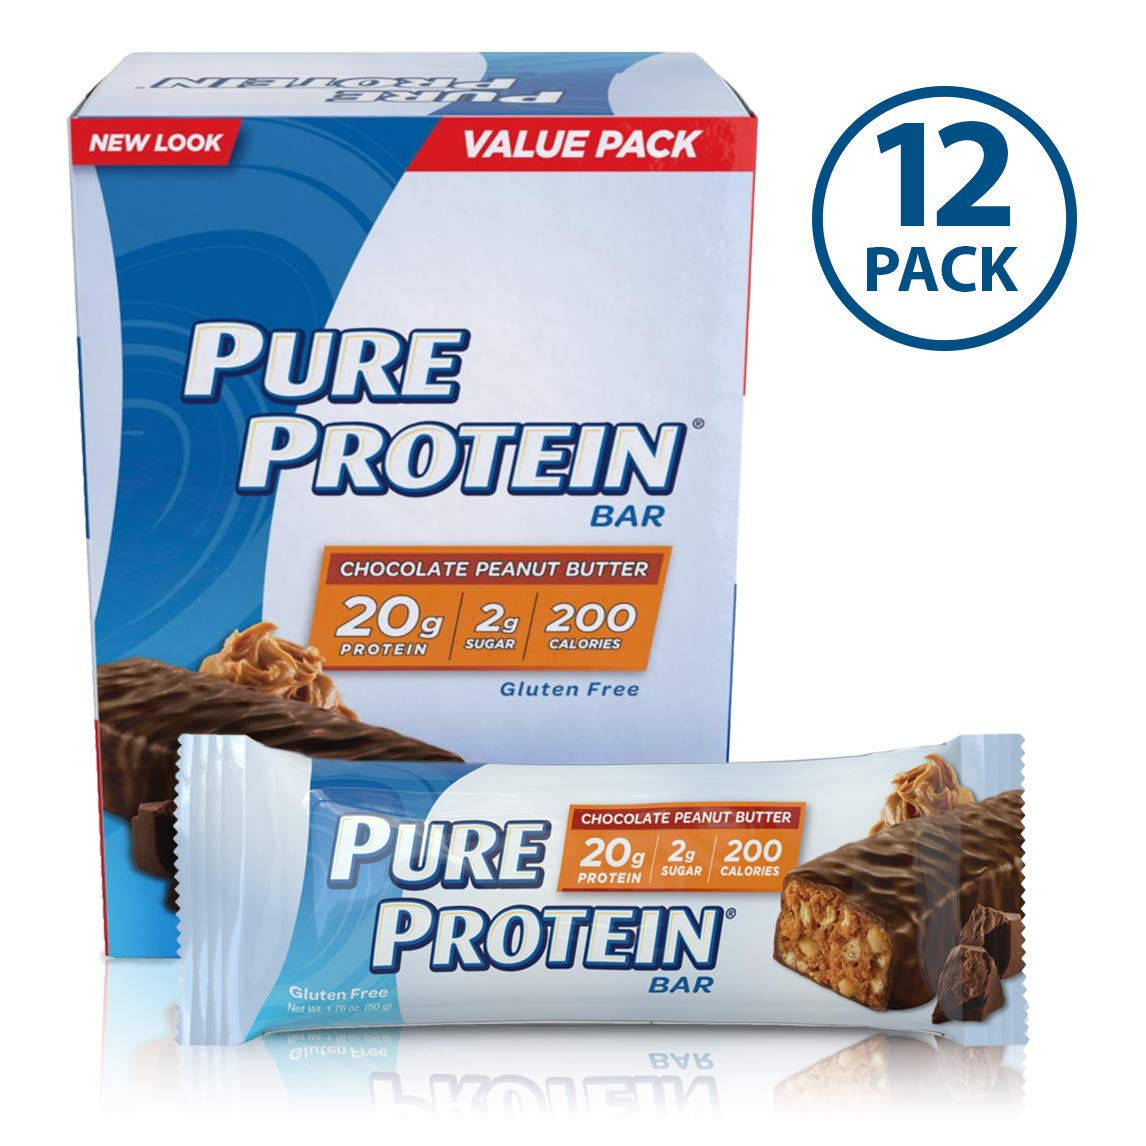 Product review on Pure Protein Bars: